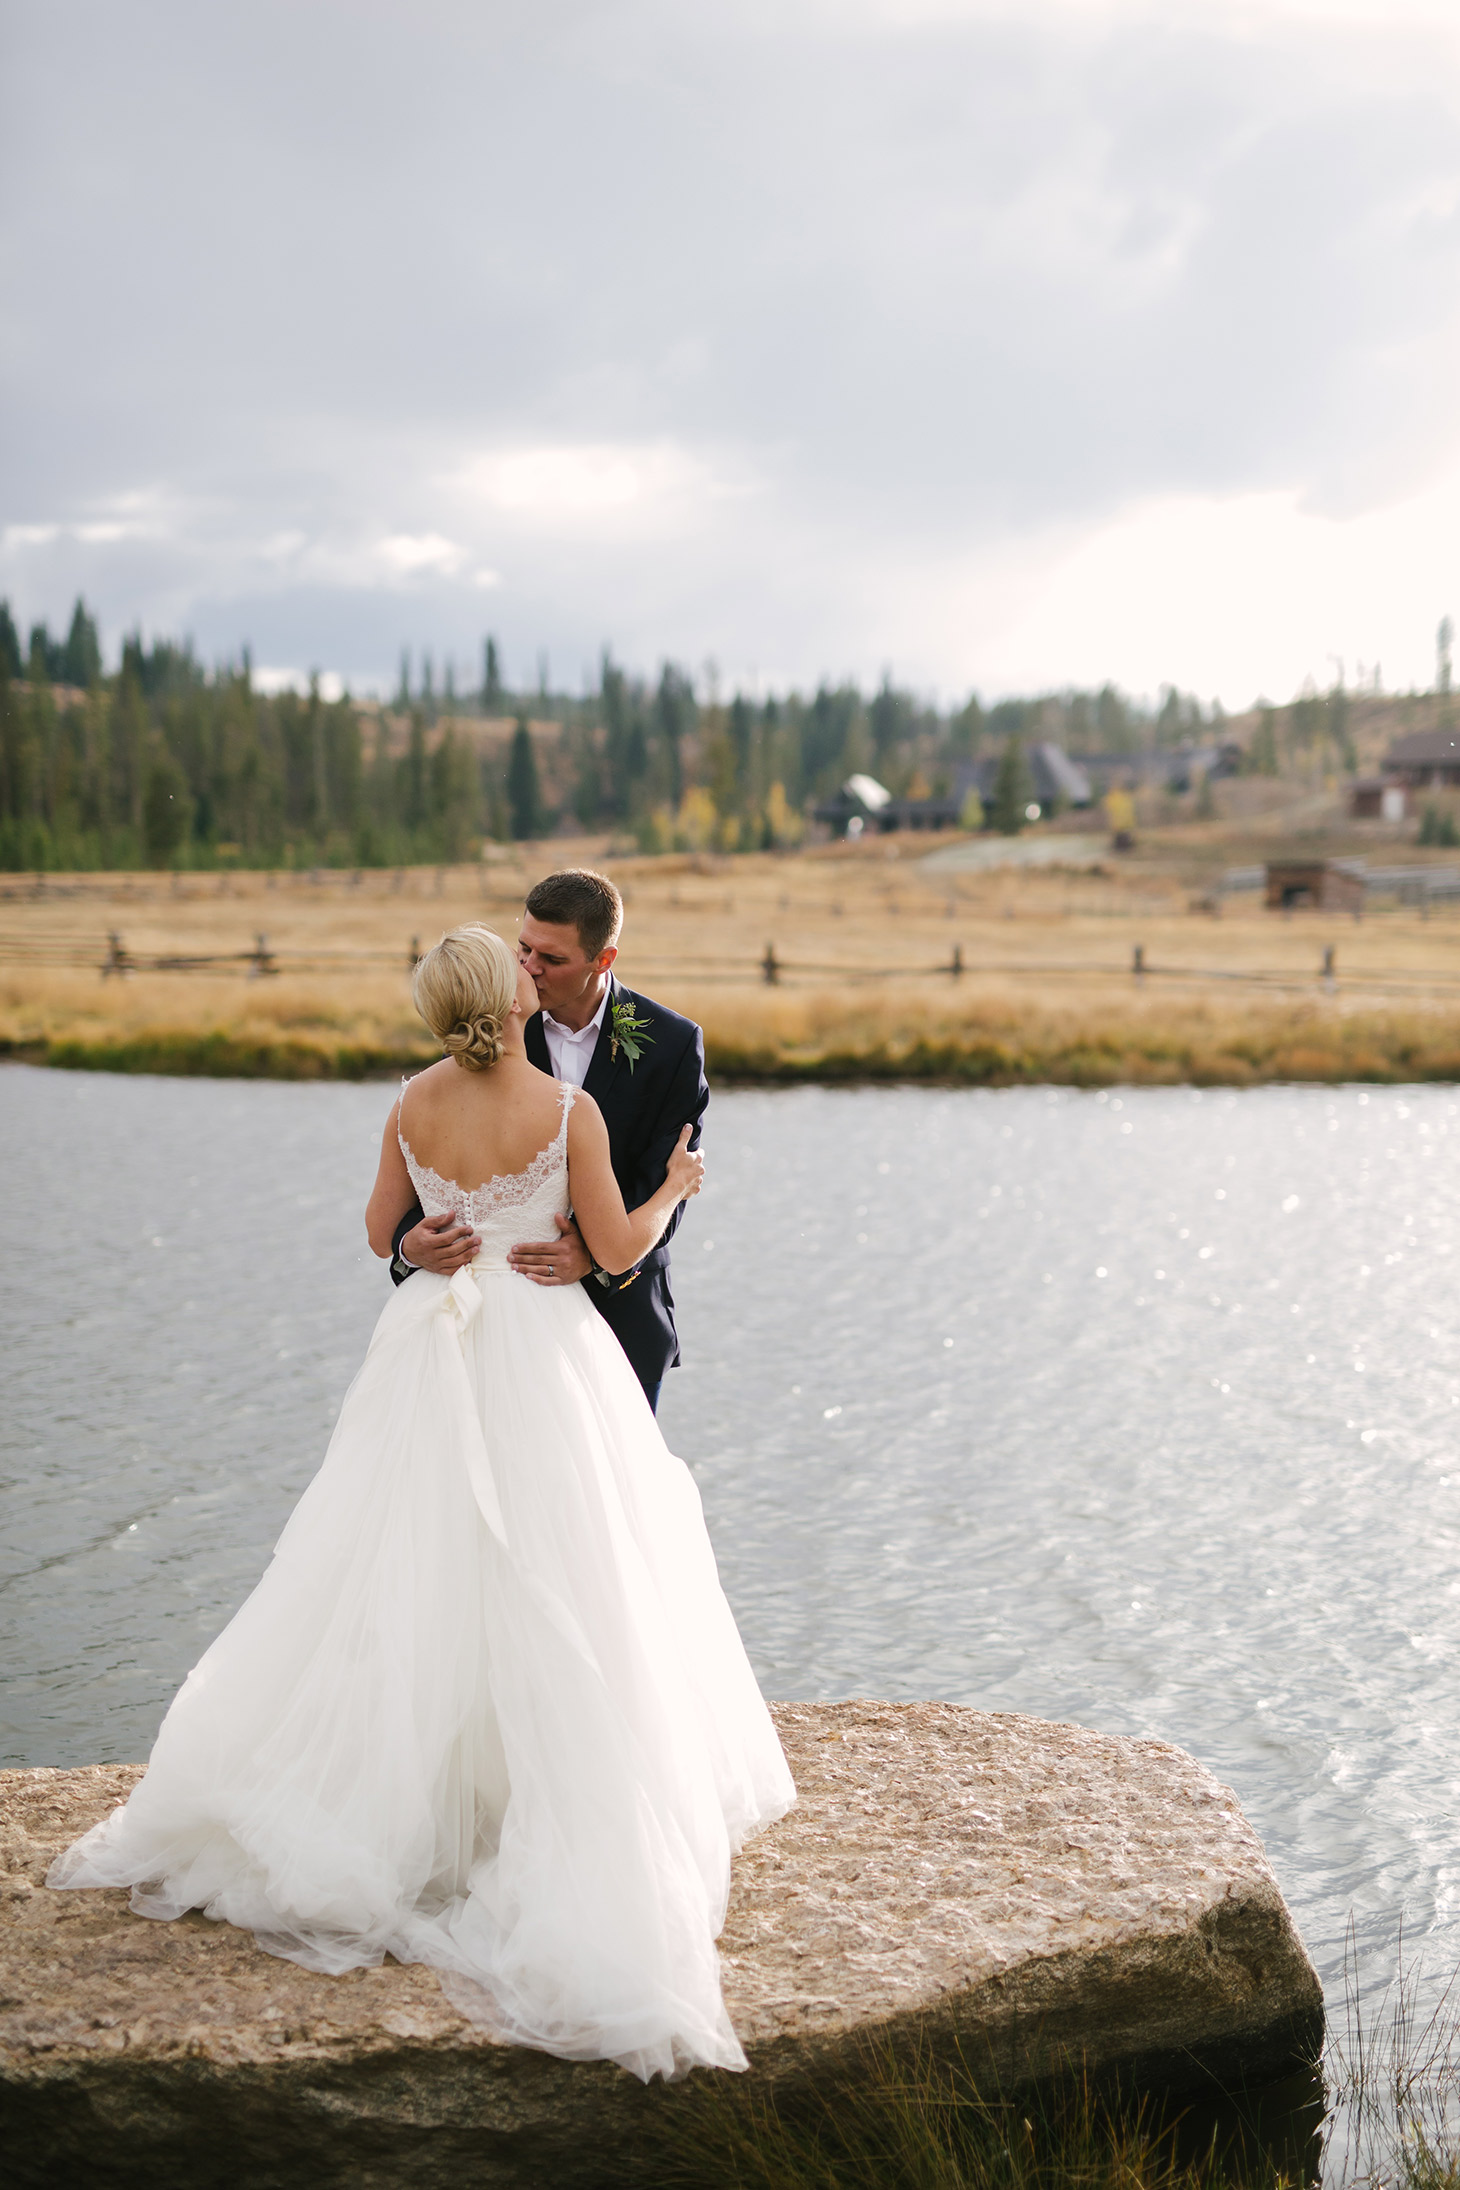 Megan-Newton-Photography-Best-Wedding-Photos-2015-089